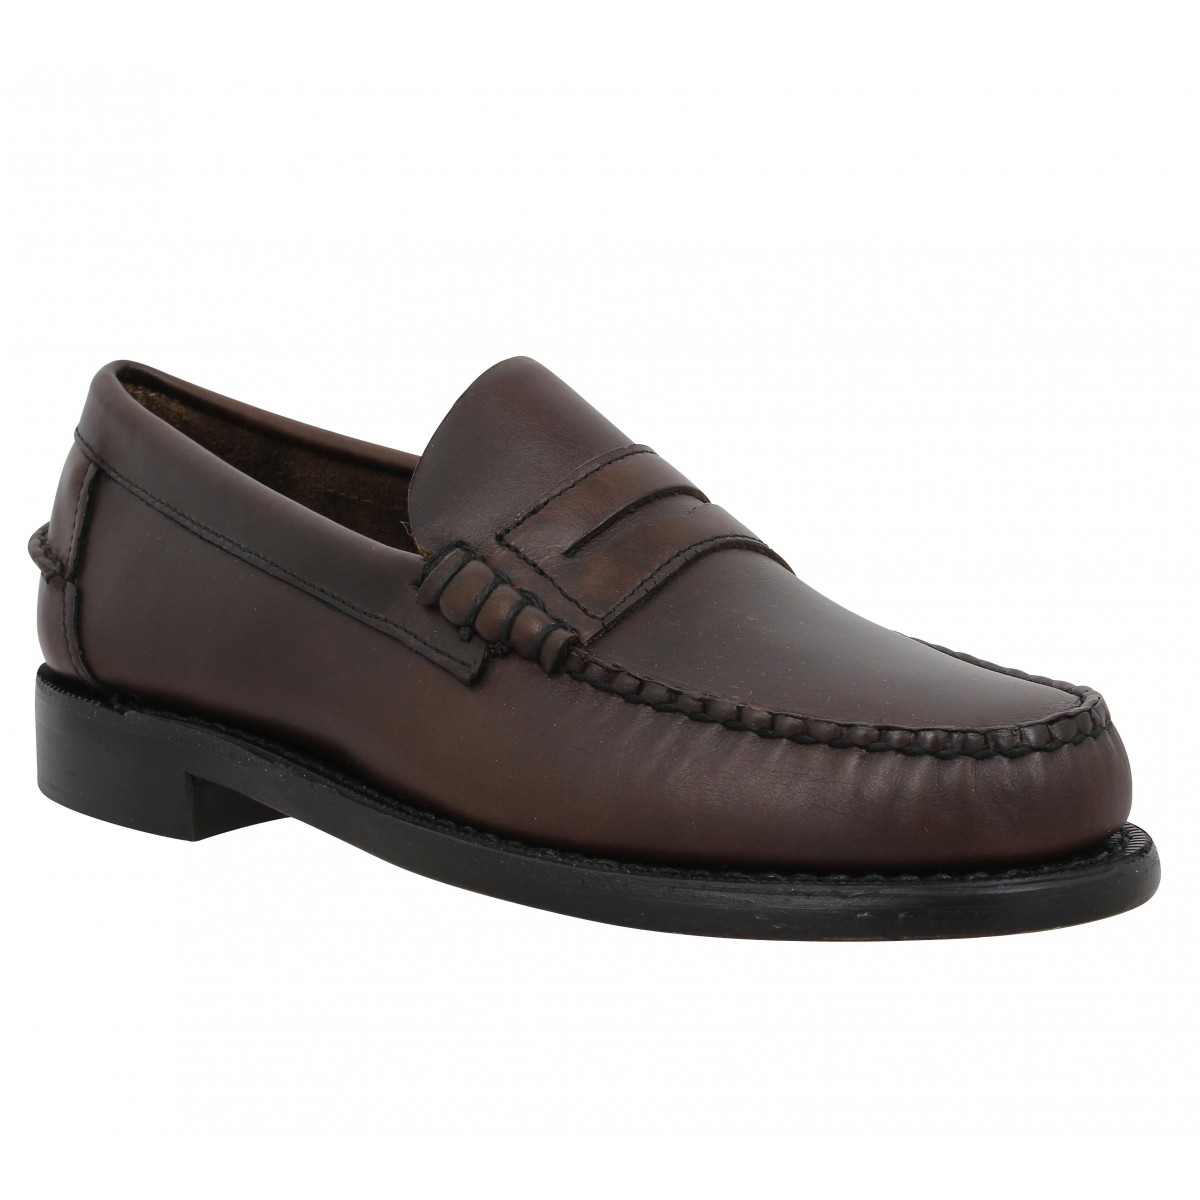 soldes sebago classic homme chocolat fanny chaussures. Black Bedroom Furniture Sets. Home Design Ideas